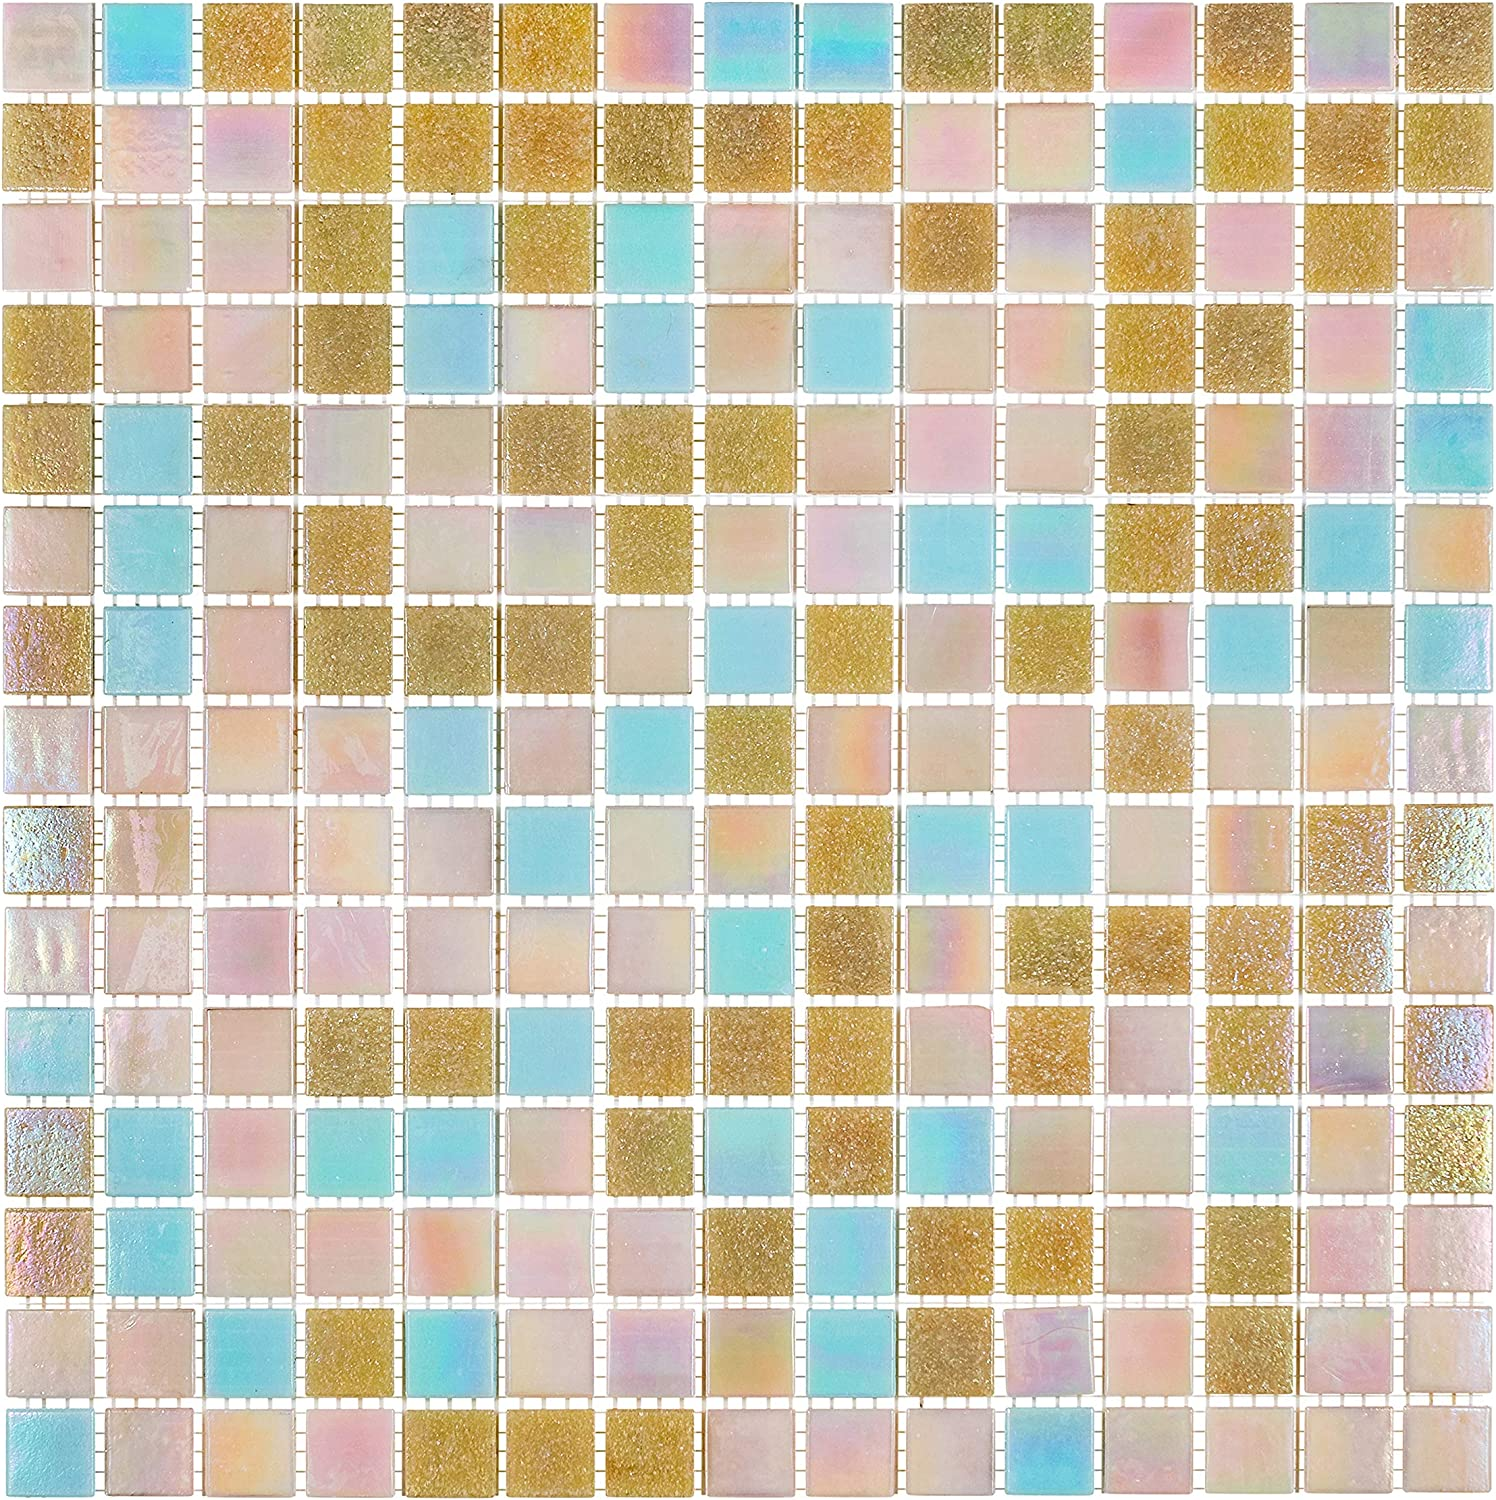 URBN Contemporary Coral Pastel Pink Blue Color Scheme Inventory cleanup selling sale and Minneapolis Mall Glass